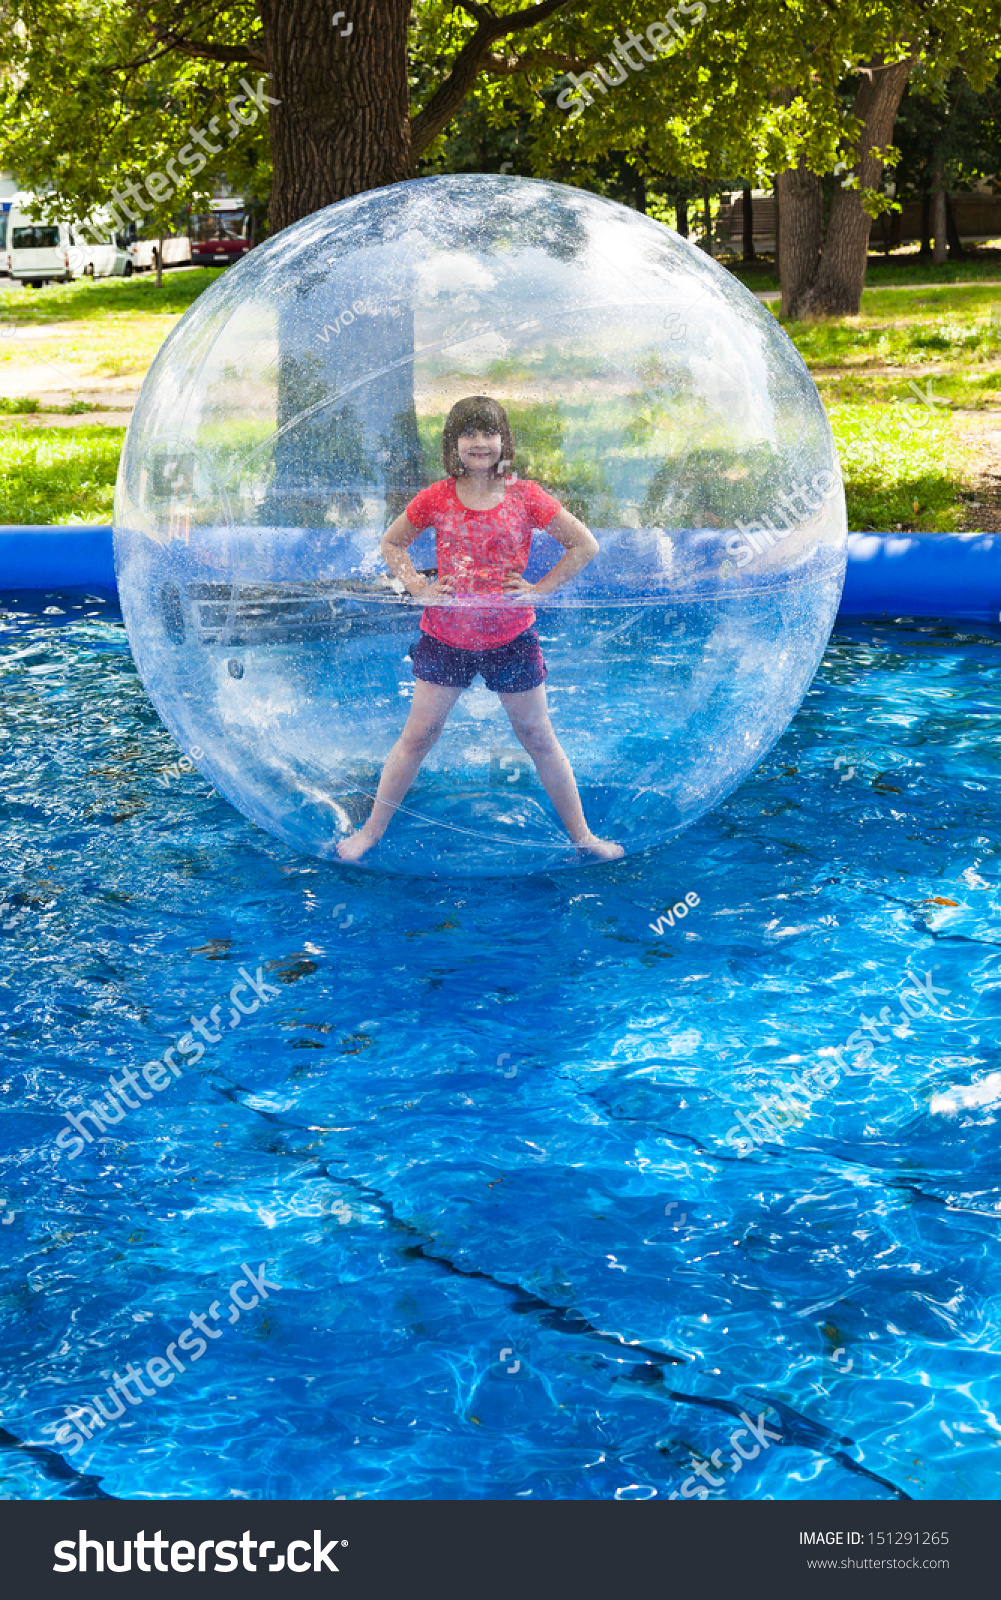 girl in water ball in open swimming pool stock photo 151291265 shutterstock